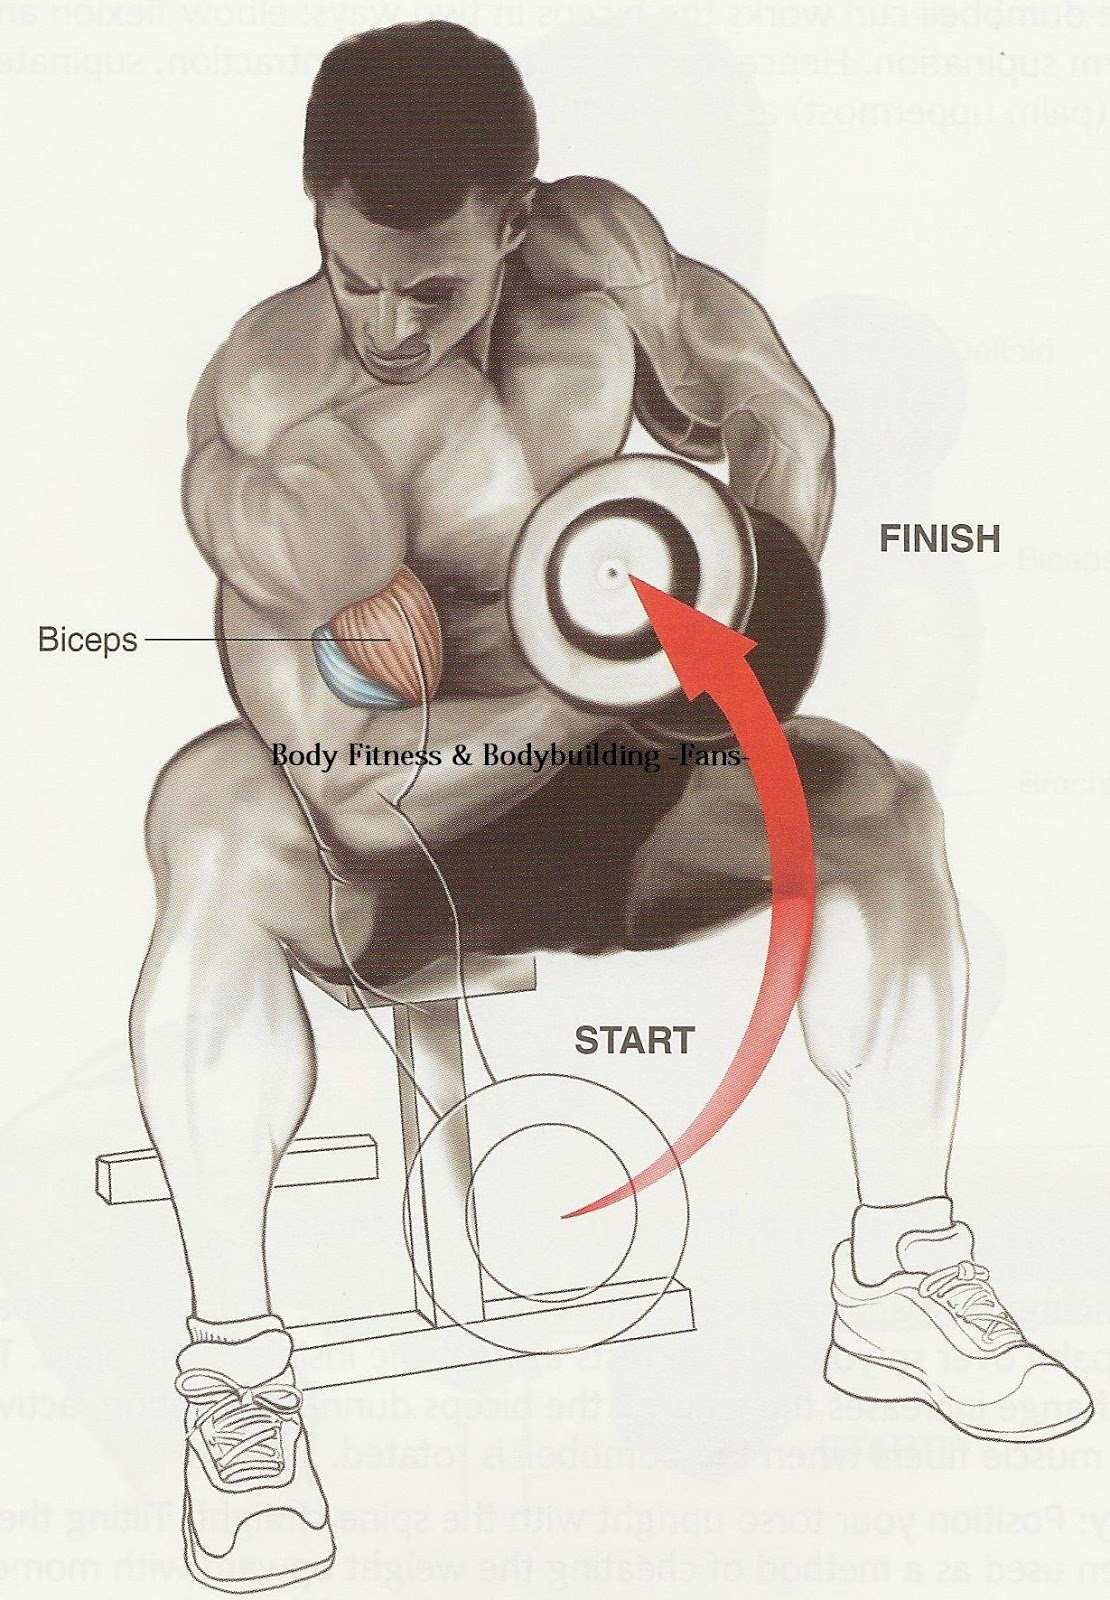 Images of Workout Exercises For Biceps